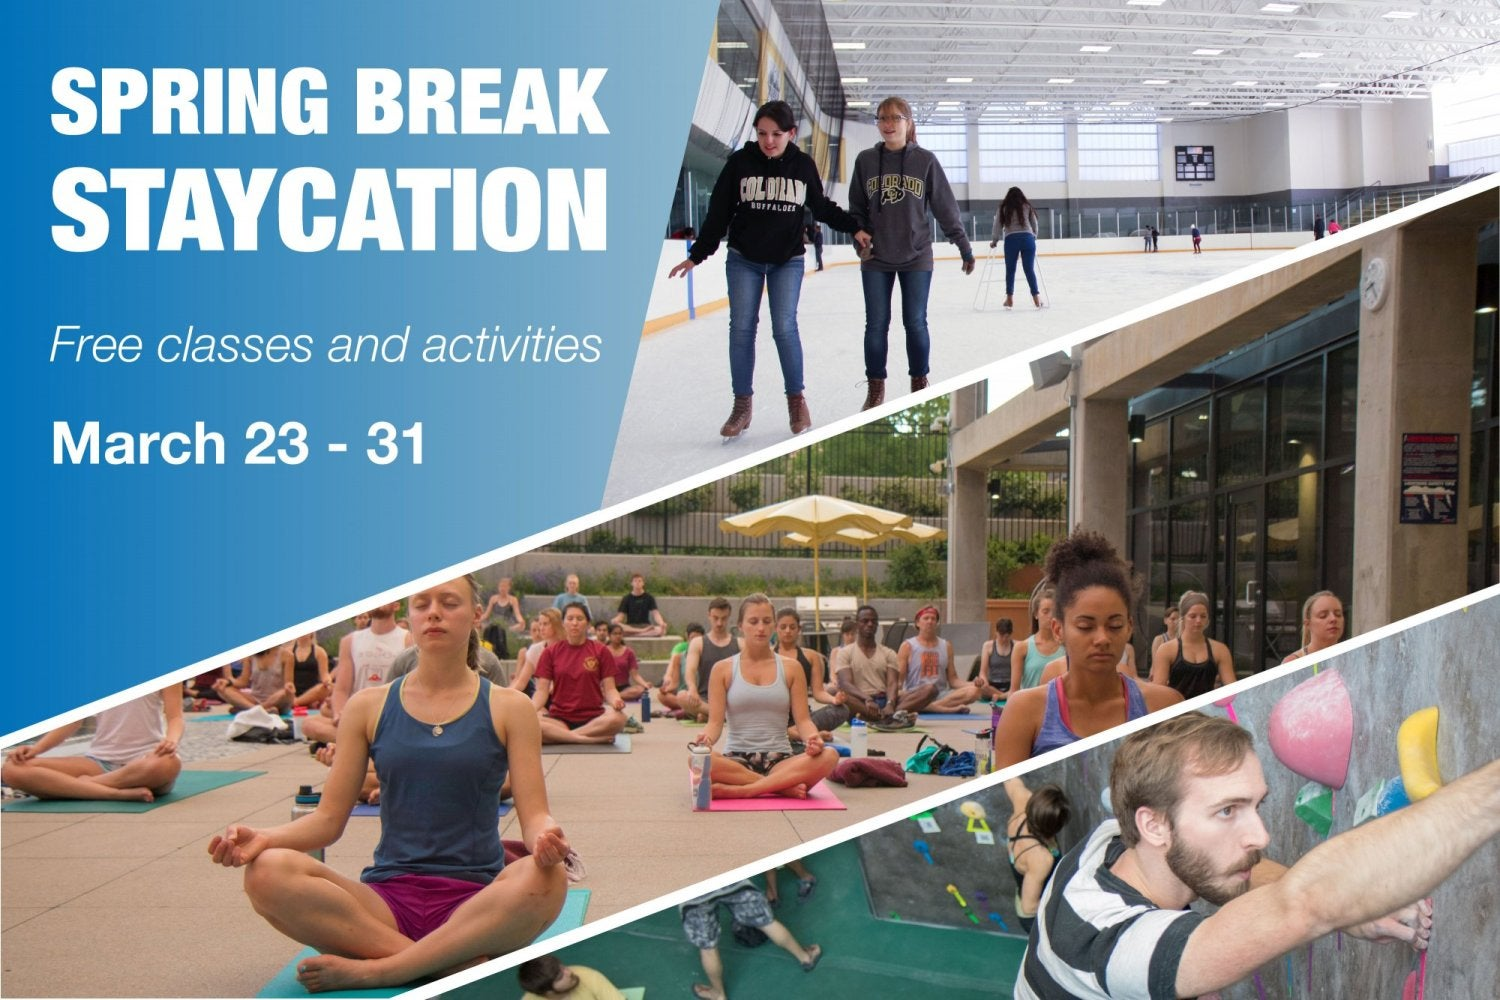 Collage of various activities at the rec center